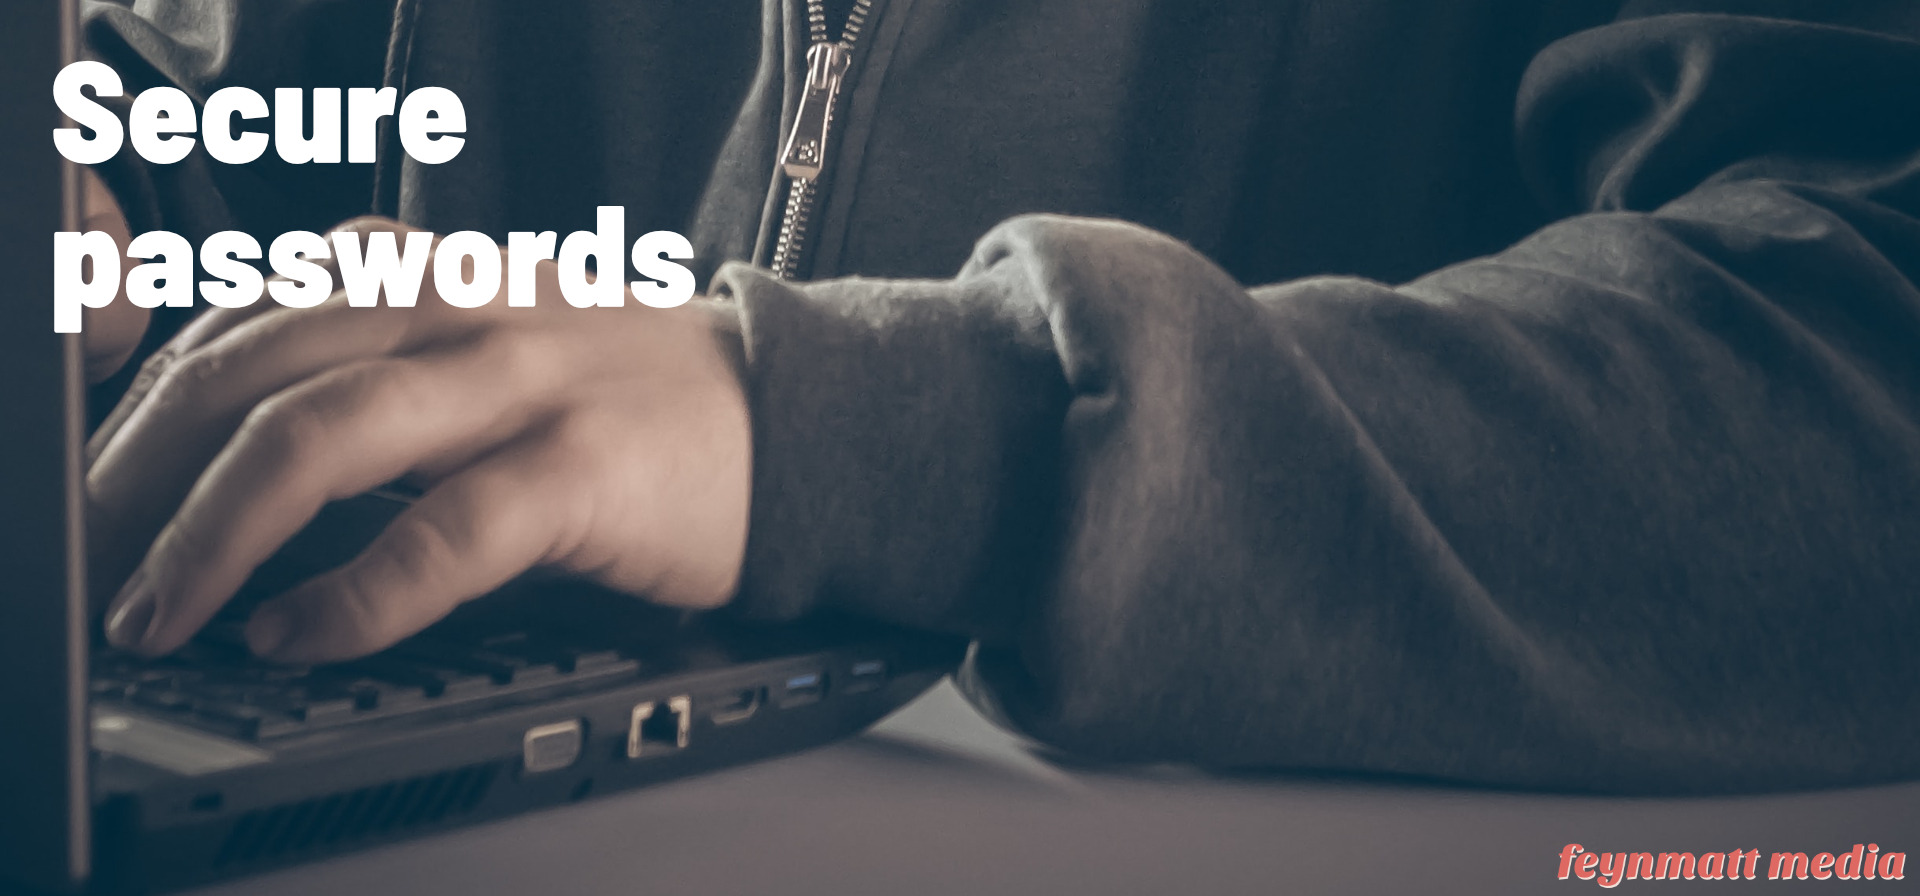 Secure Passwords. Man in black zip hoodie typing on notebook keyboard.